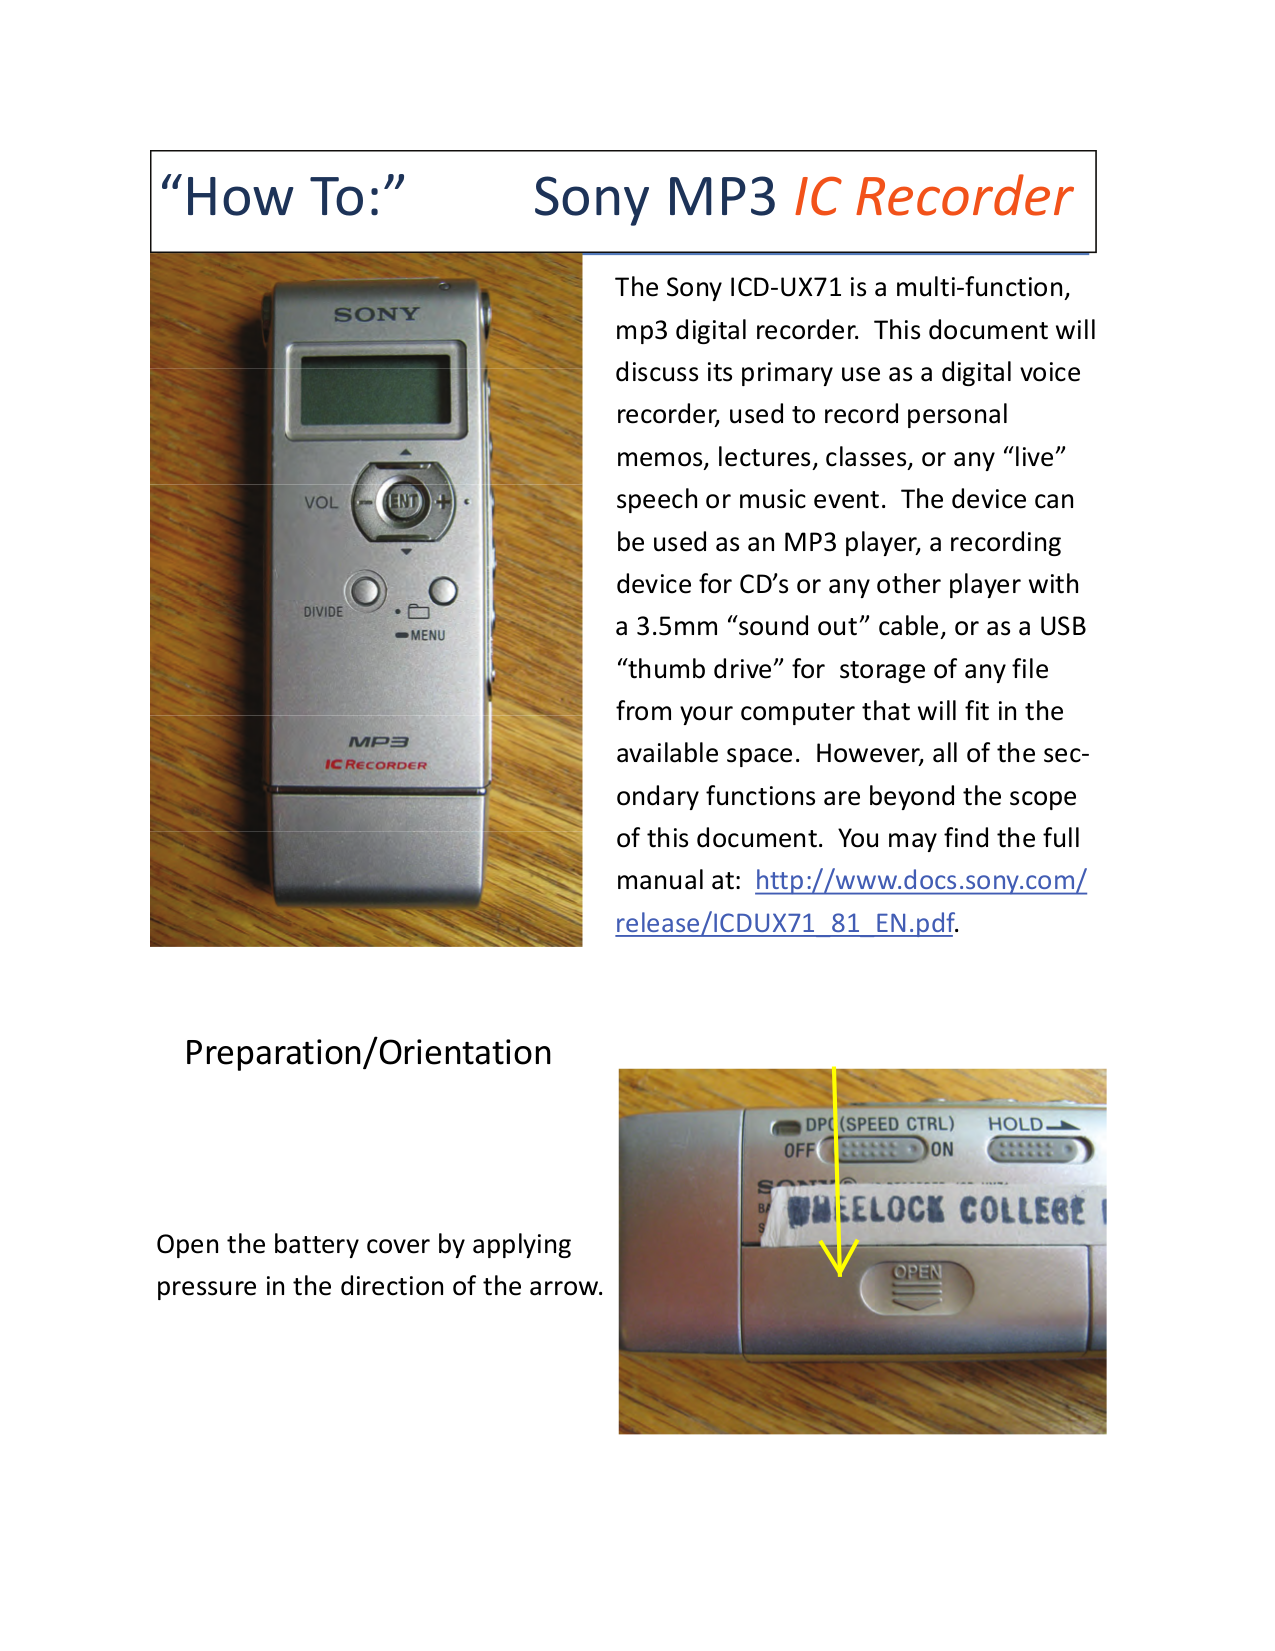 download free pdf for sony icd ux71 voice recorder manual rh umlib com sony ic recorder icd-ux71 manual sony mp3 ic recorder icd-ux71 instructions